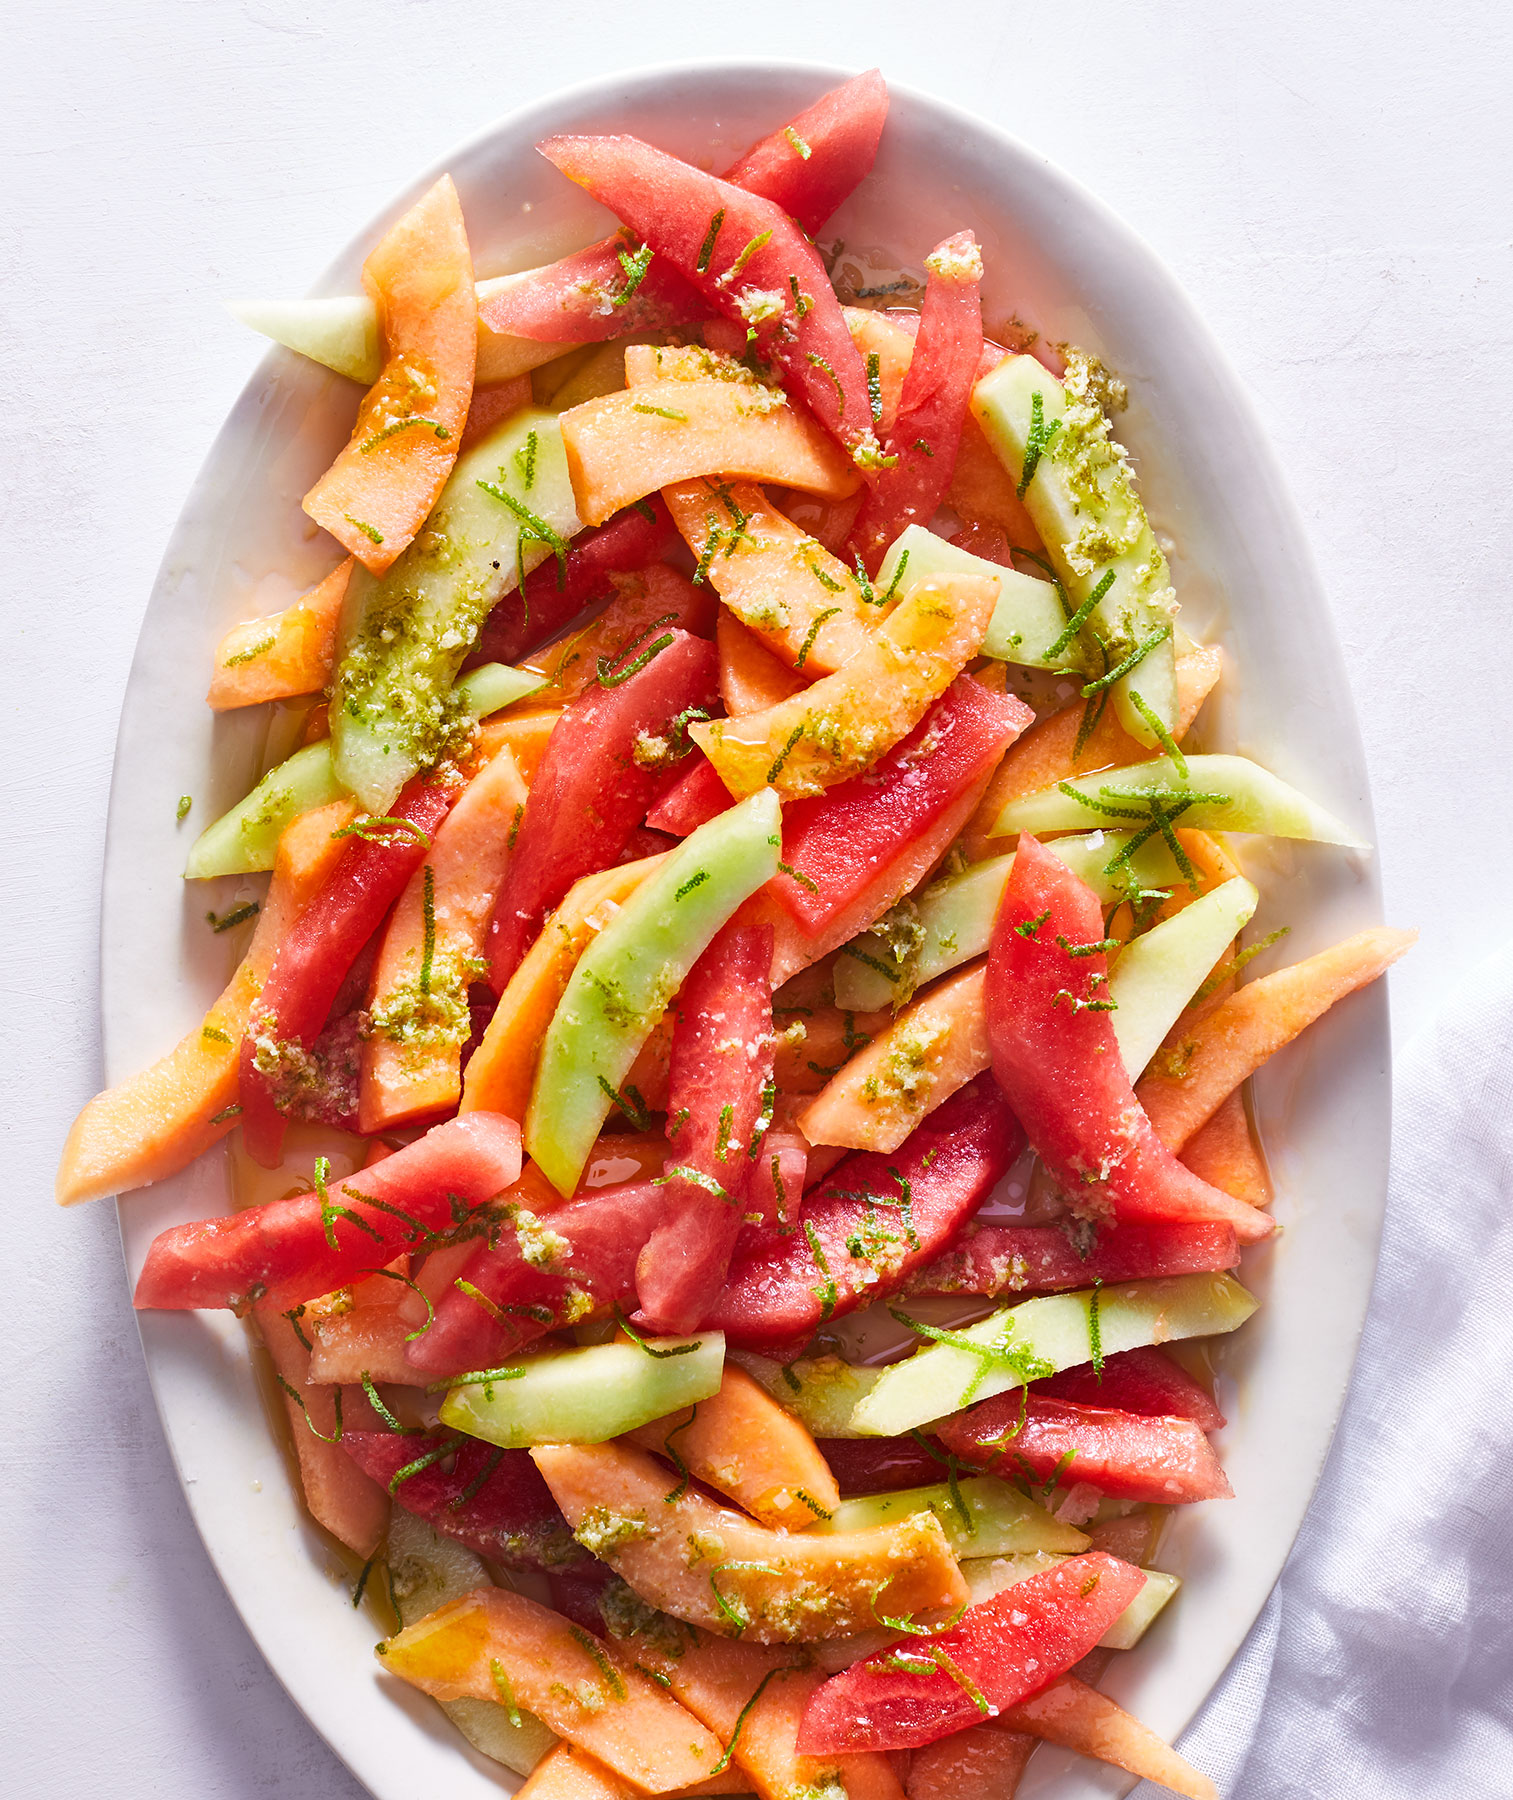 Ginger-Lime Melon Salad